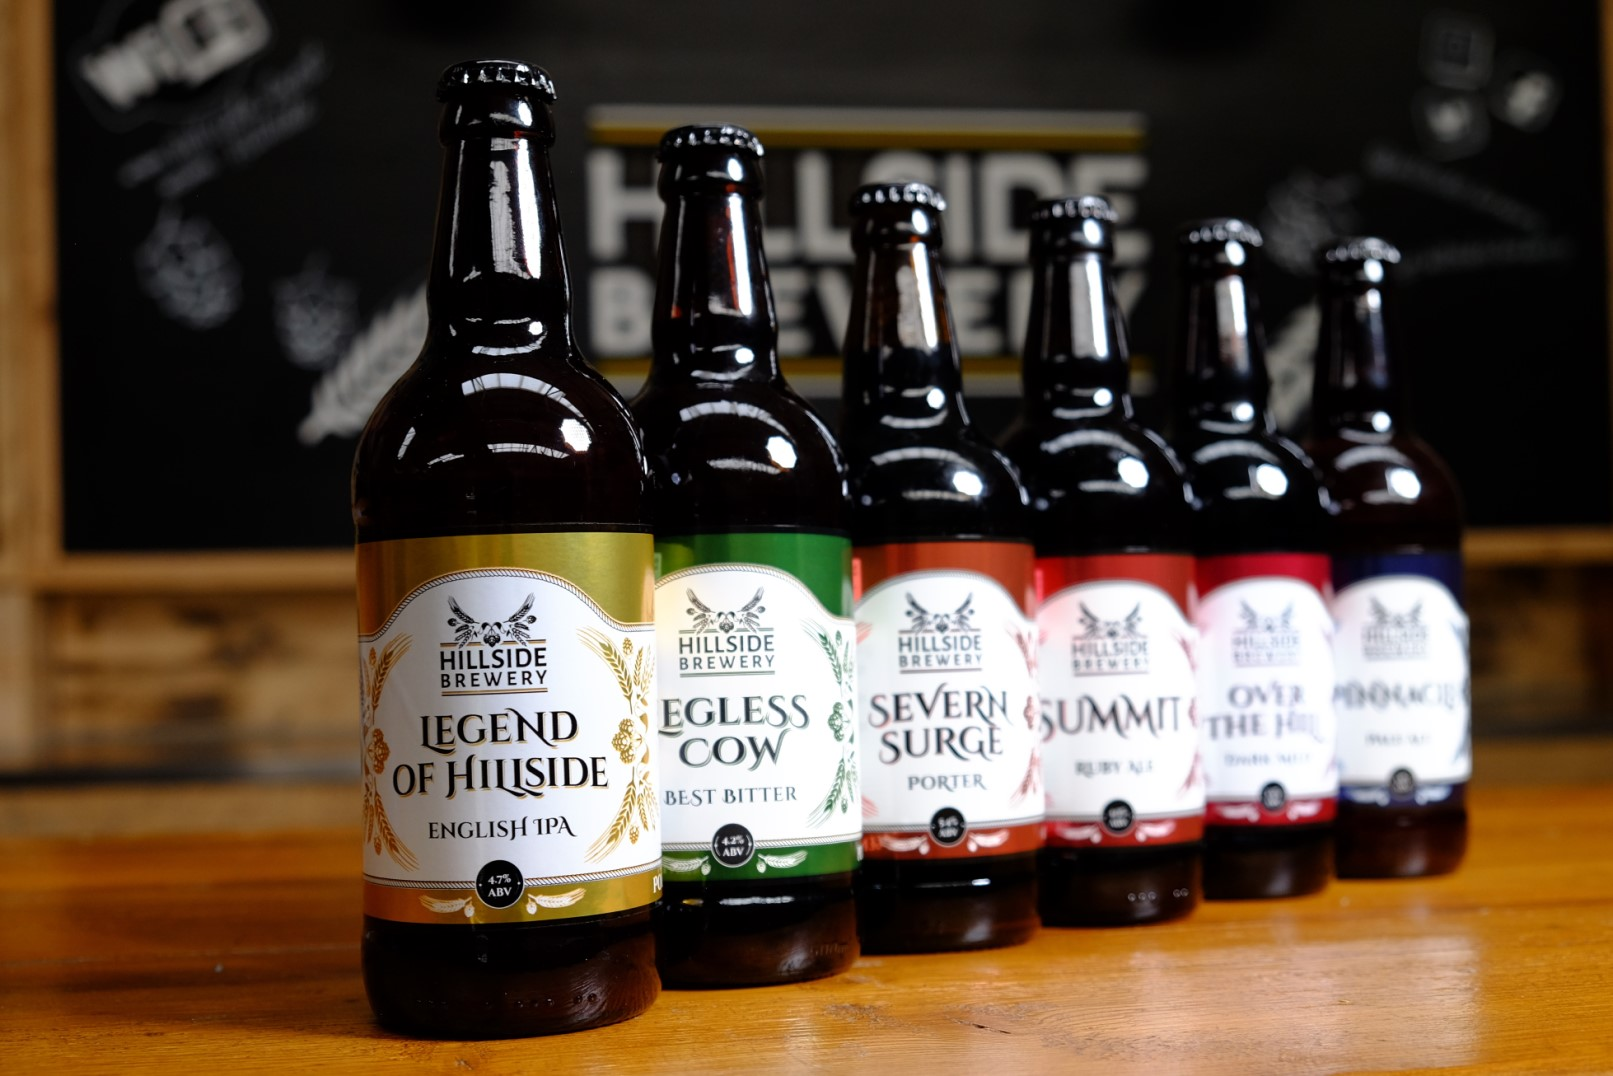 Range of Hillside Brewery Beers